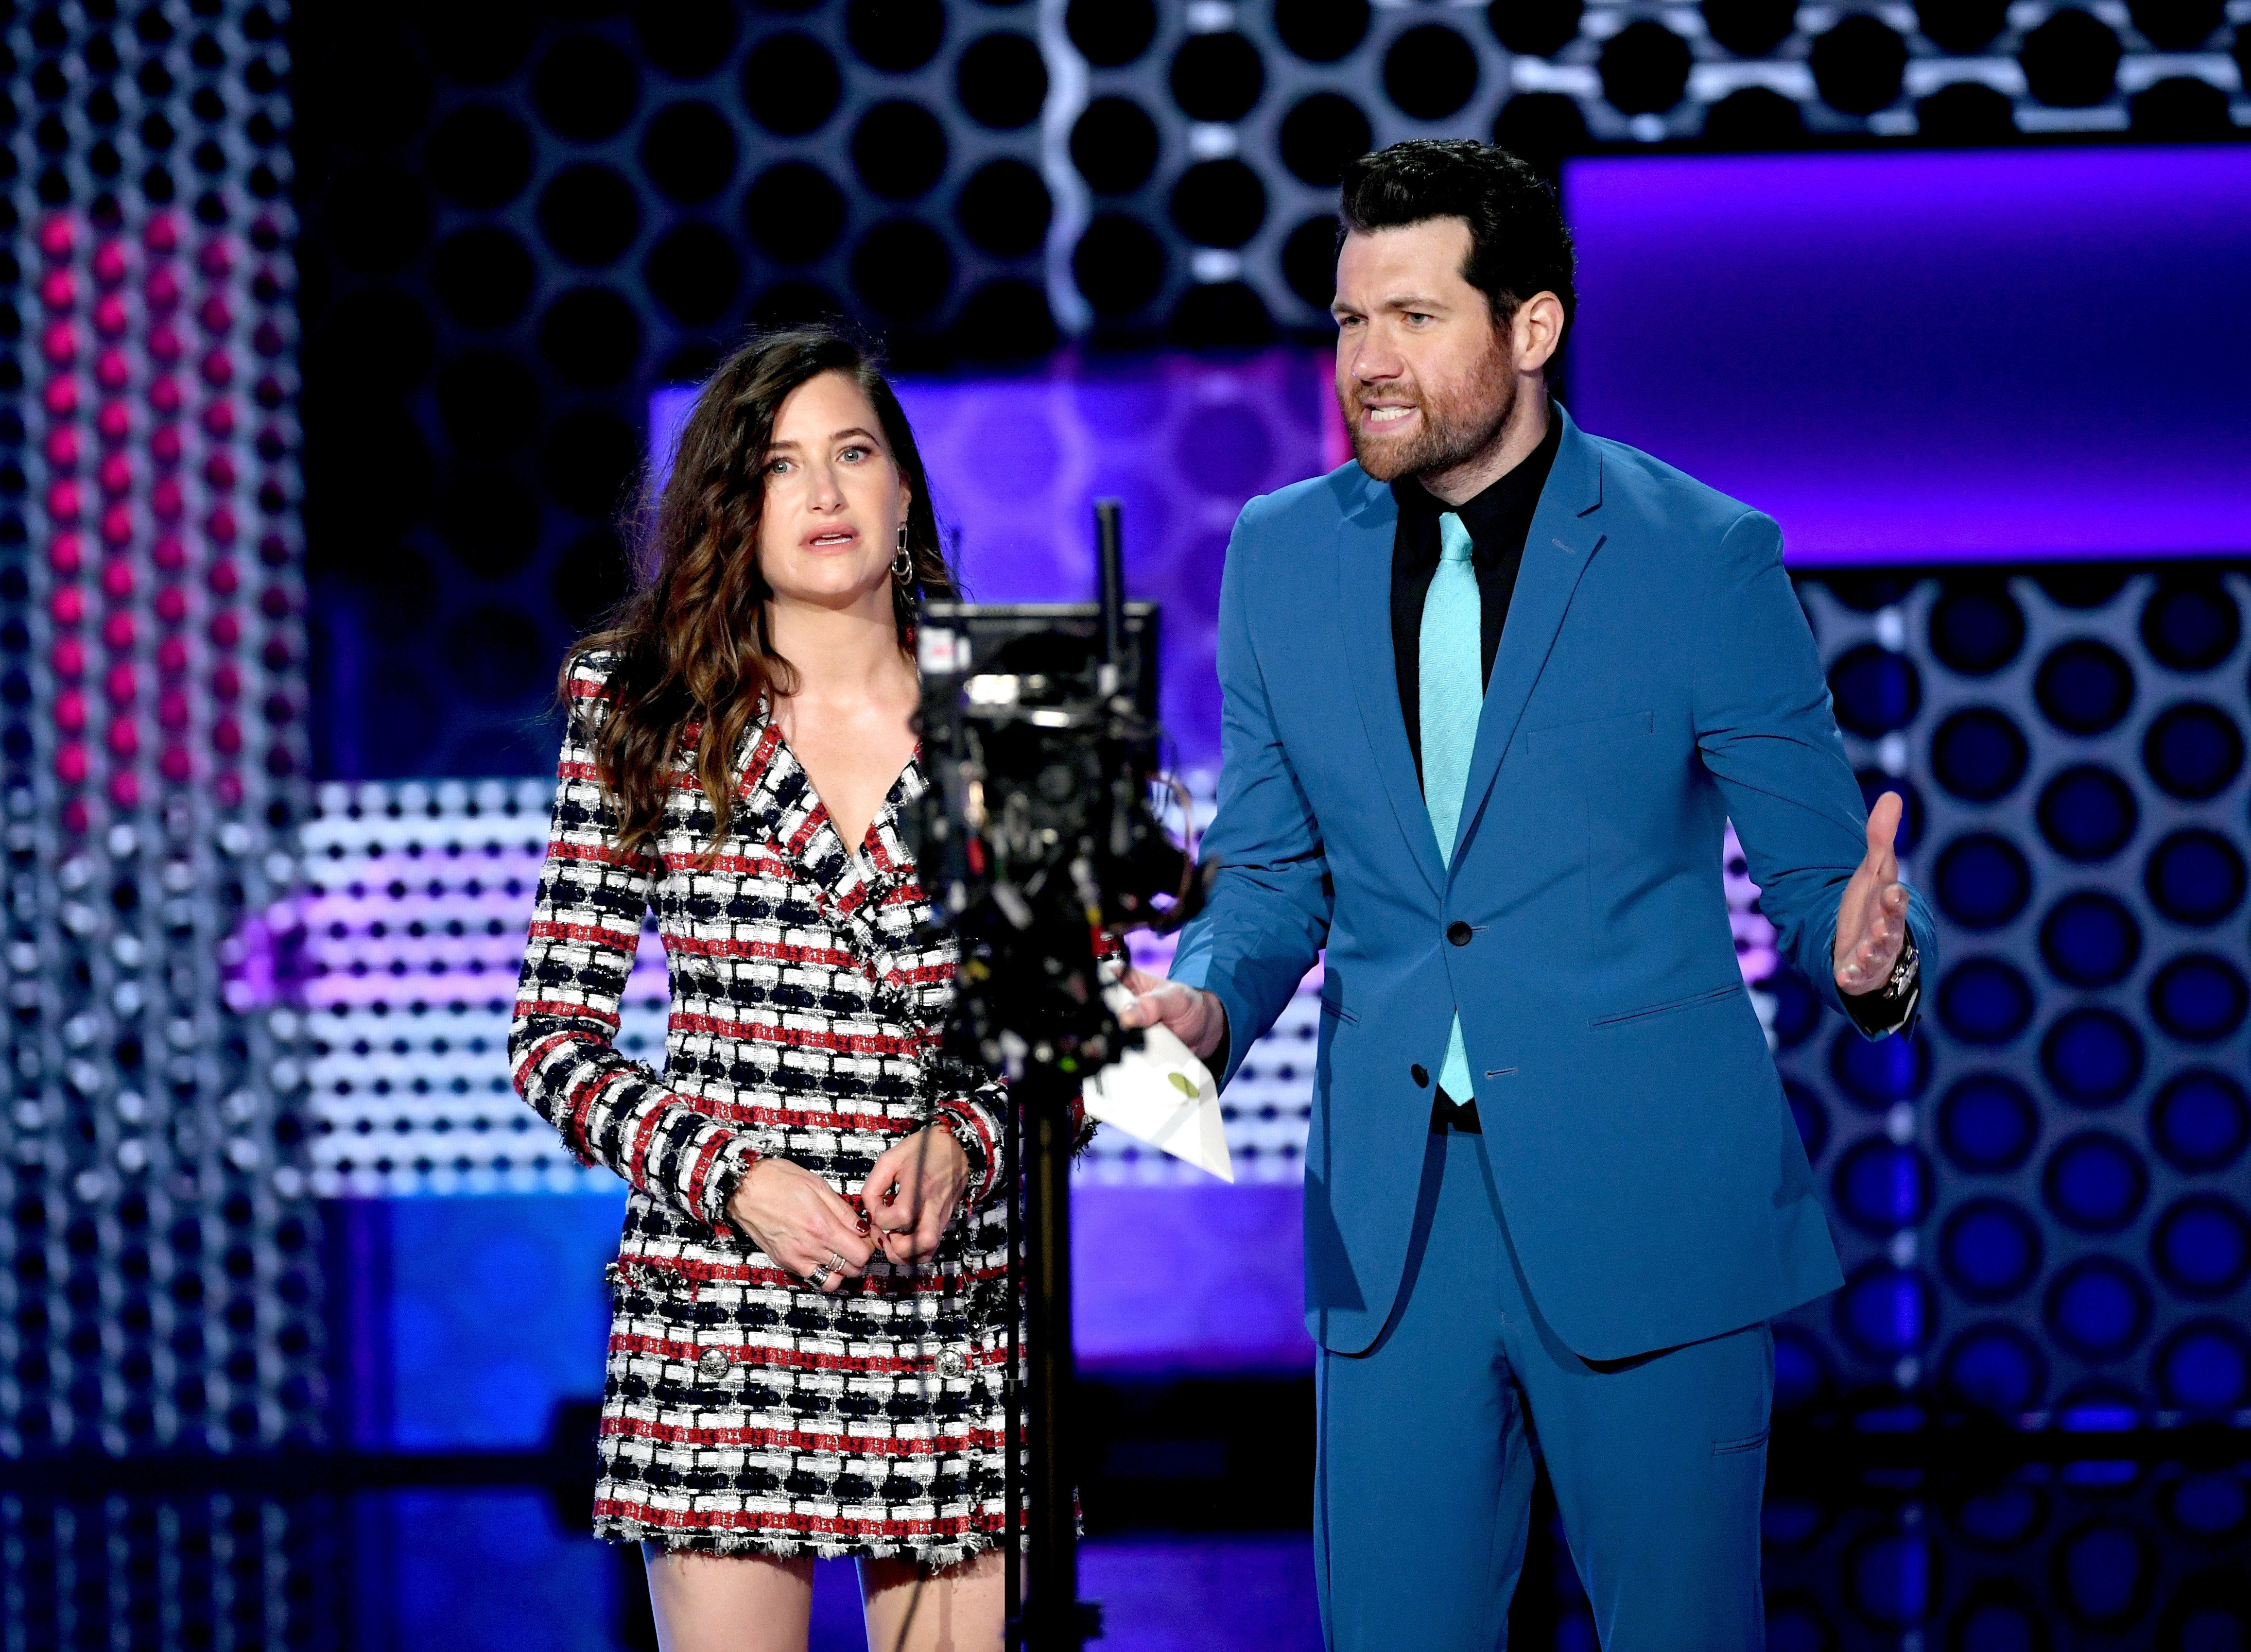 LOS ANGELES, CA - OCTOBER 09:  Kathryn Hahn and Billy Eichner speak onstage during the 2018 American Music Awards at Microsoft Theater on October 9, 2018 in Los Angeles, California.  (Photo by Kevin Winter/Getty Images For dcp)